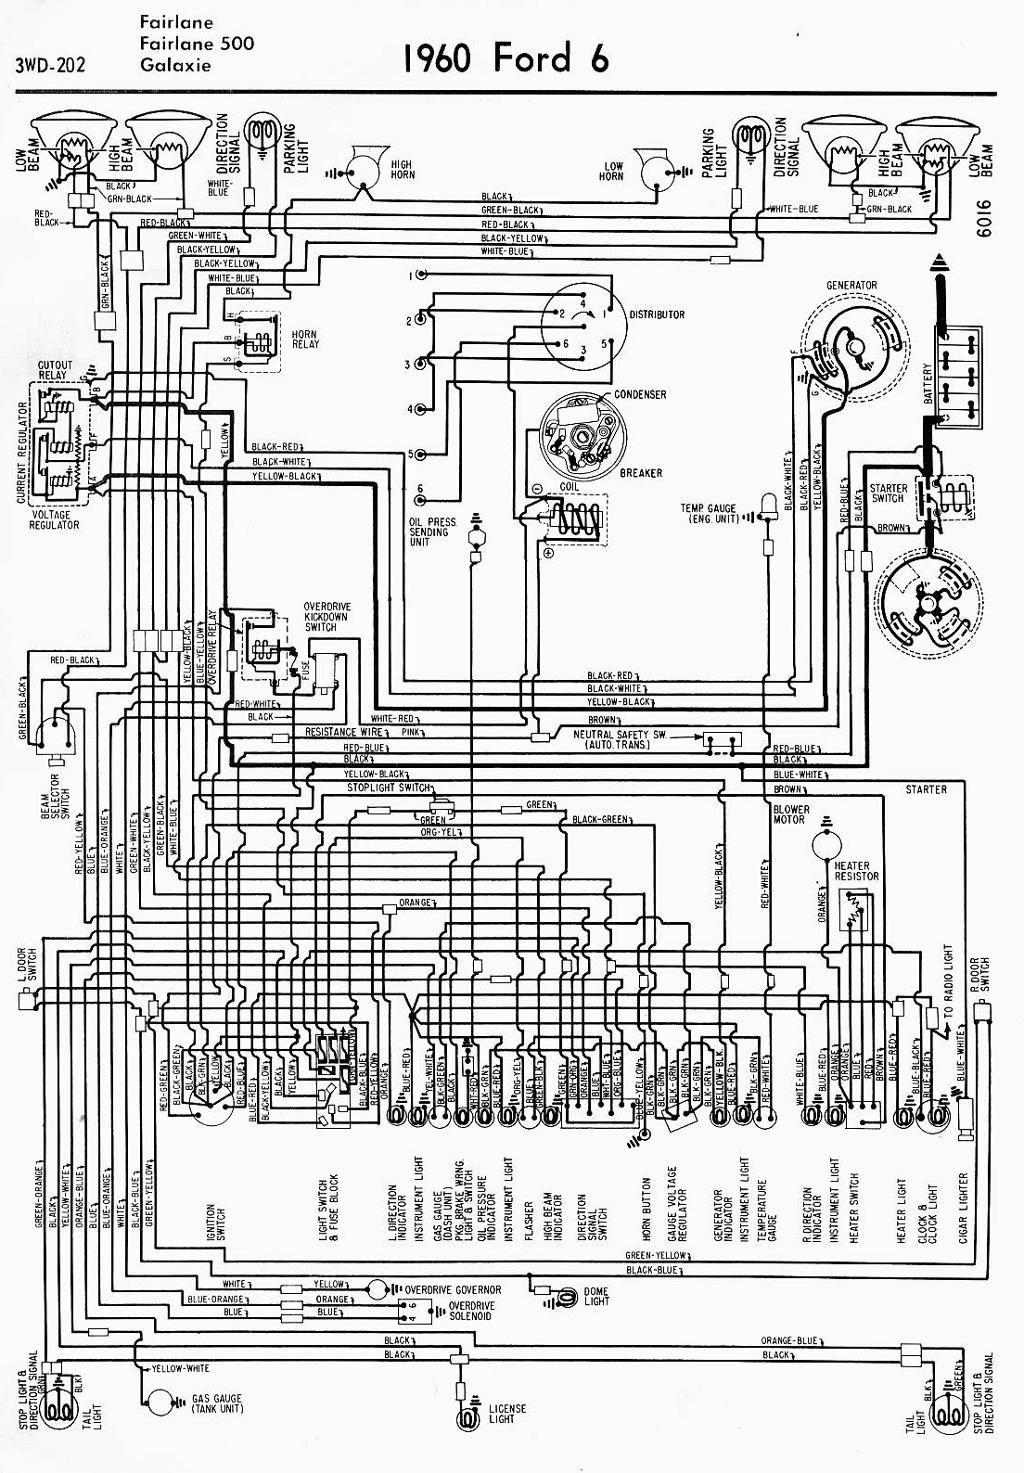 Wiring Diagram For 1960 Ford 6 Fairlane Fairlane 500 And